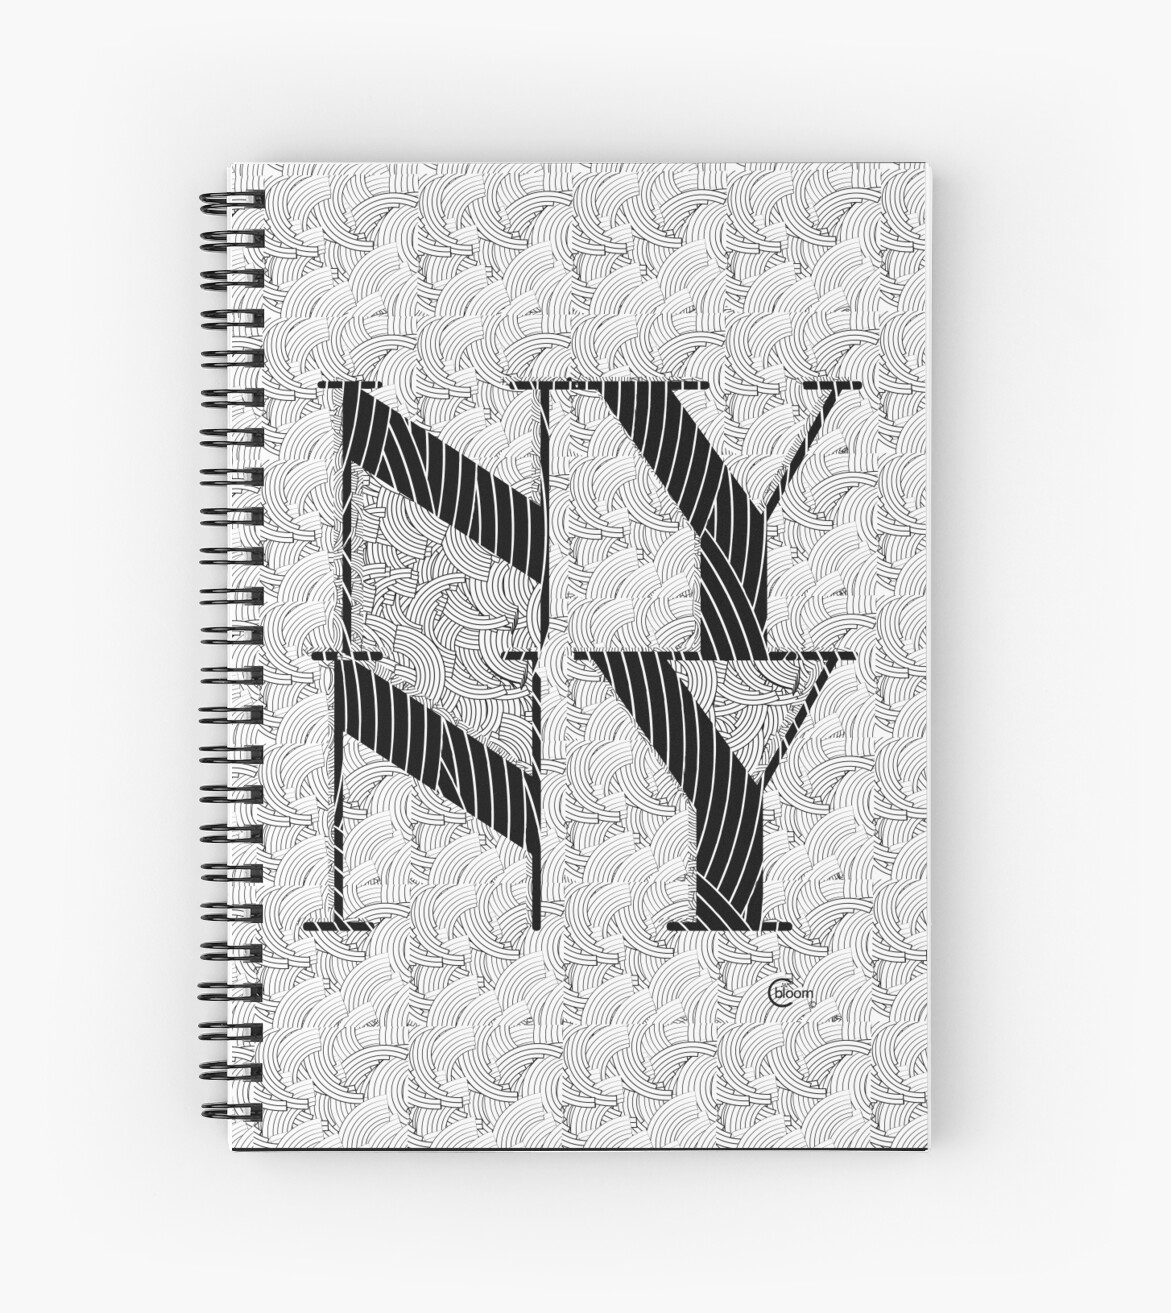 New York , New York, Deco Swing by CecelyBloom